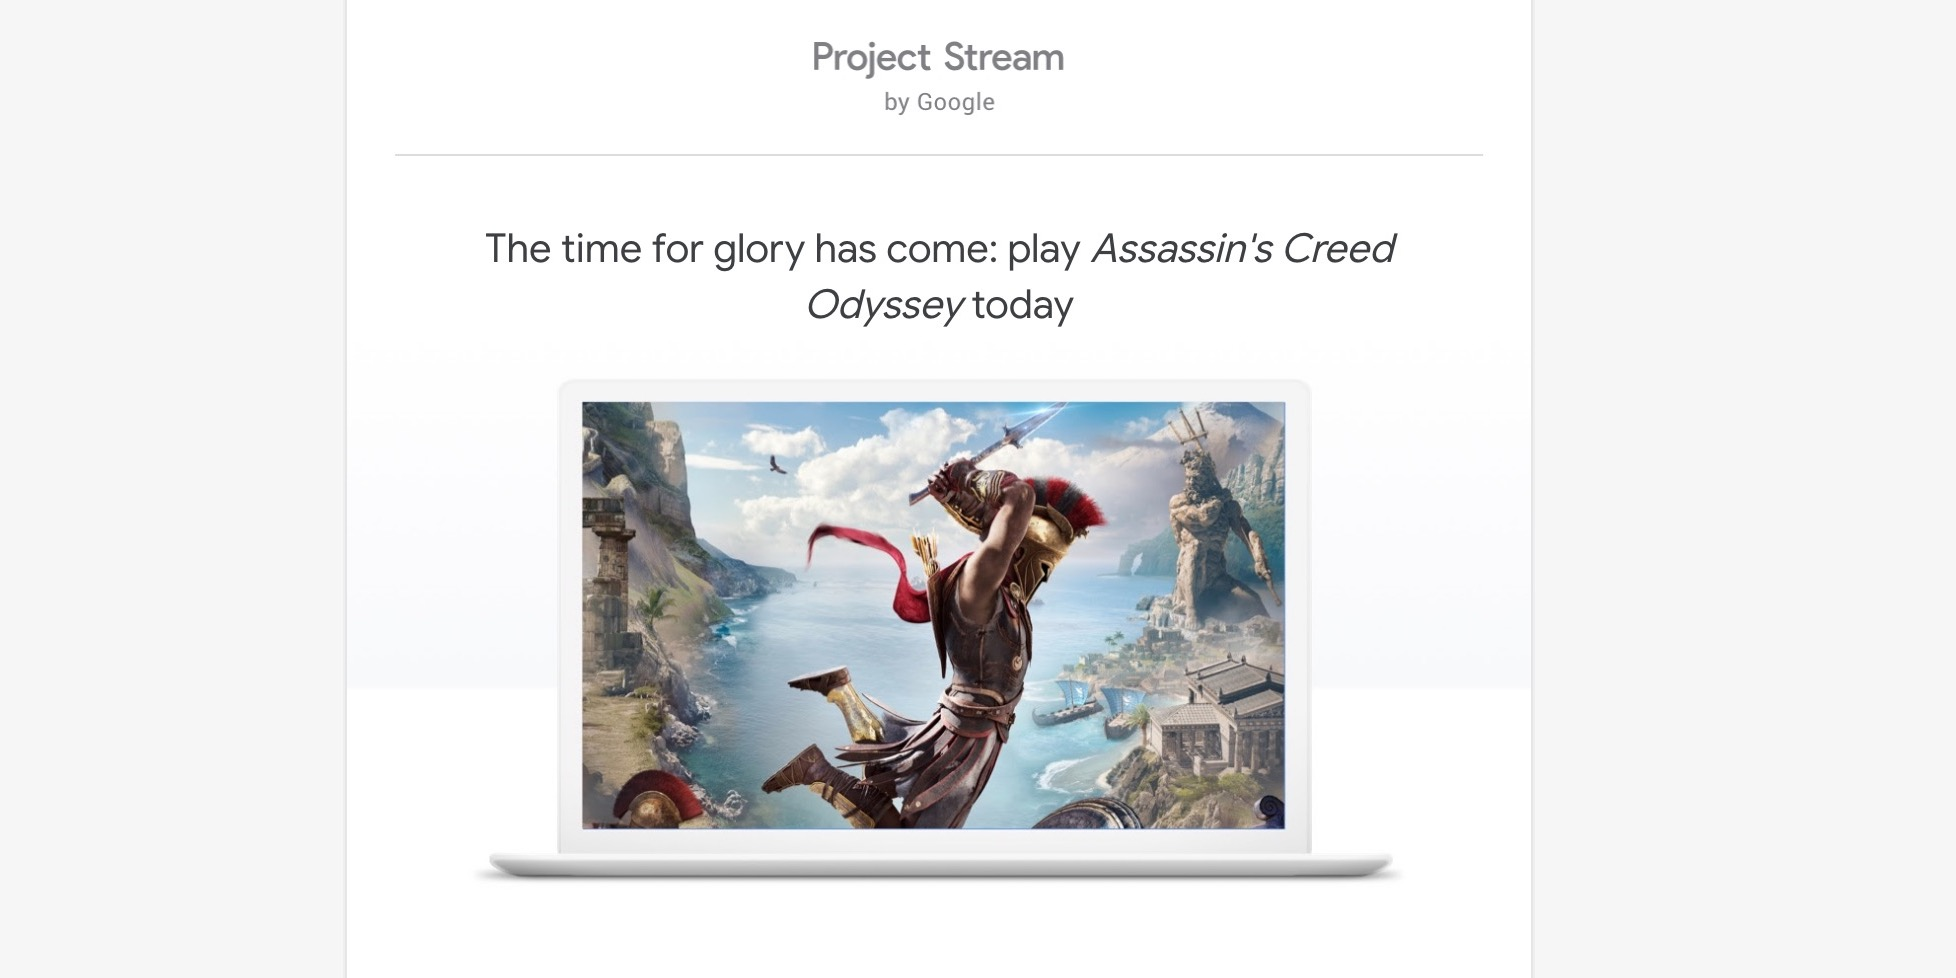 Project Stream invites